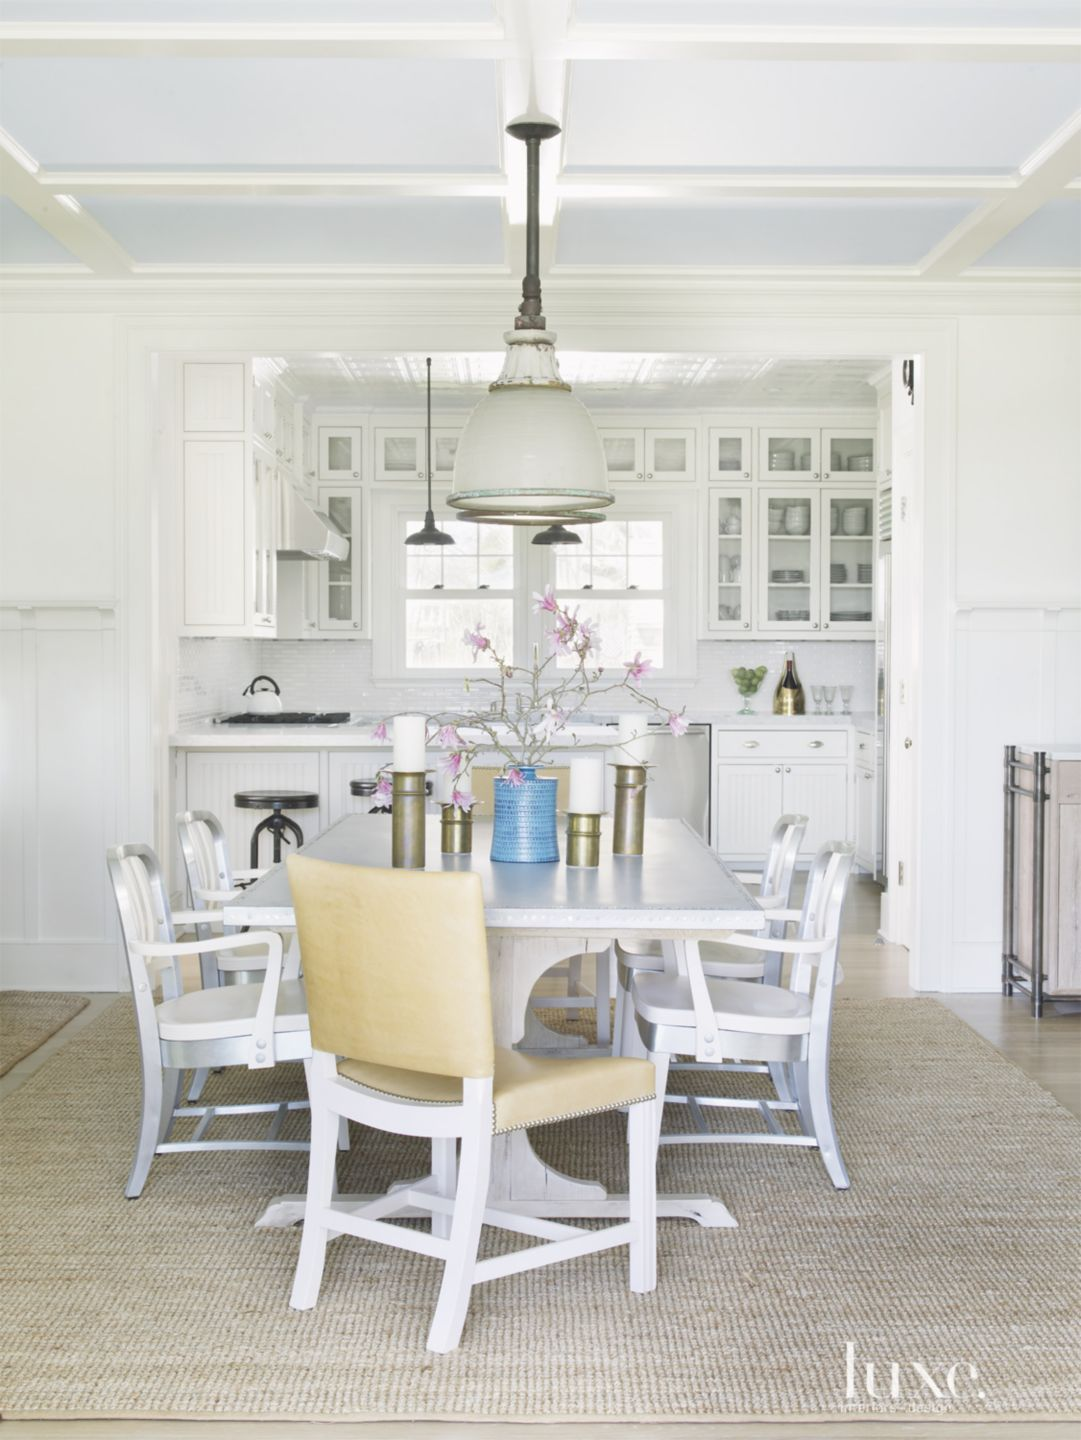 Transitional White Dining Area with Industrial Chairs